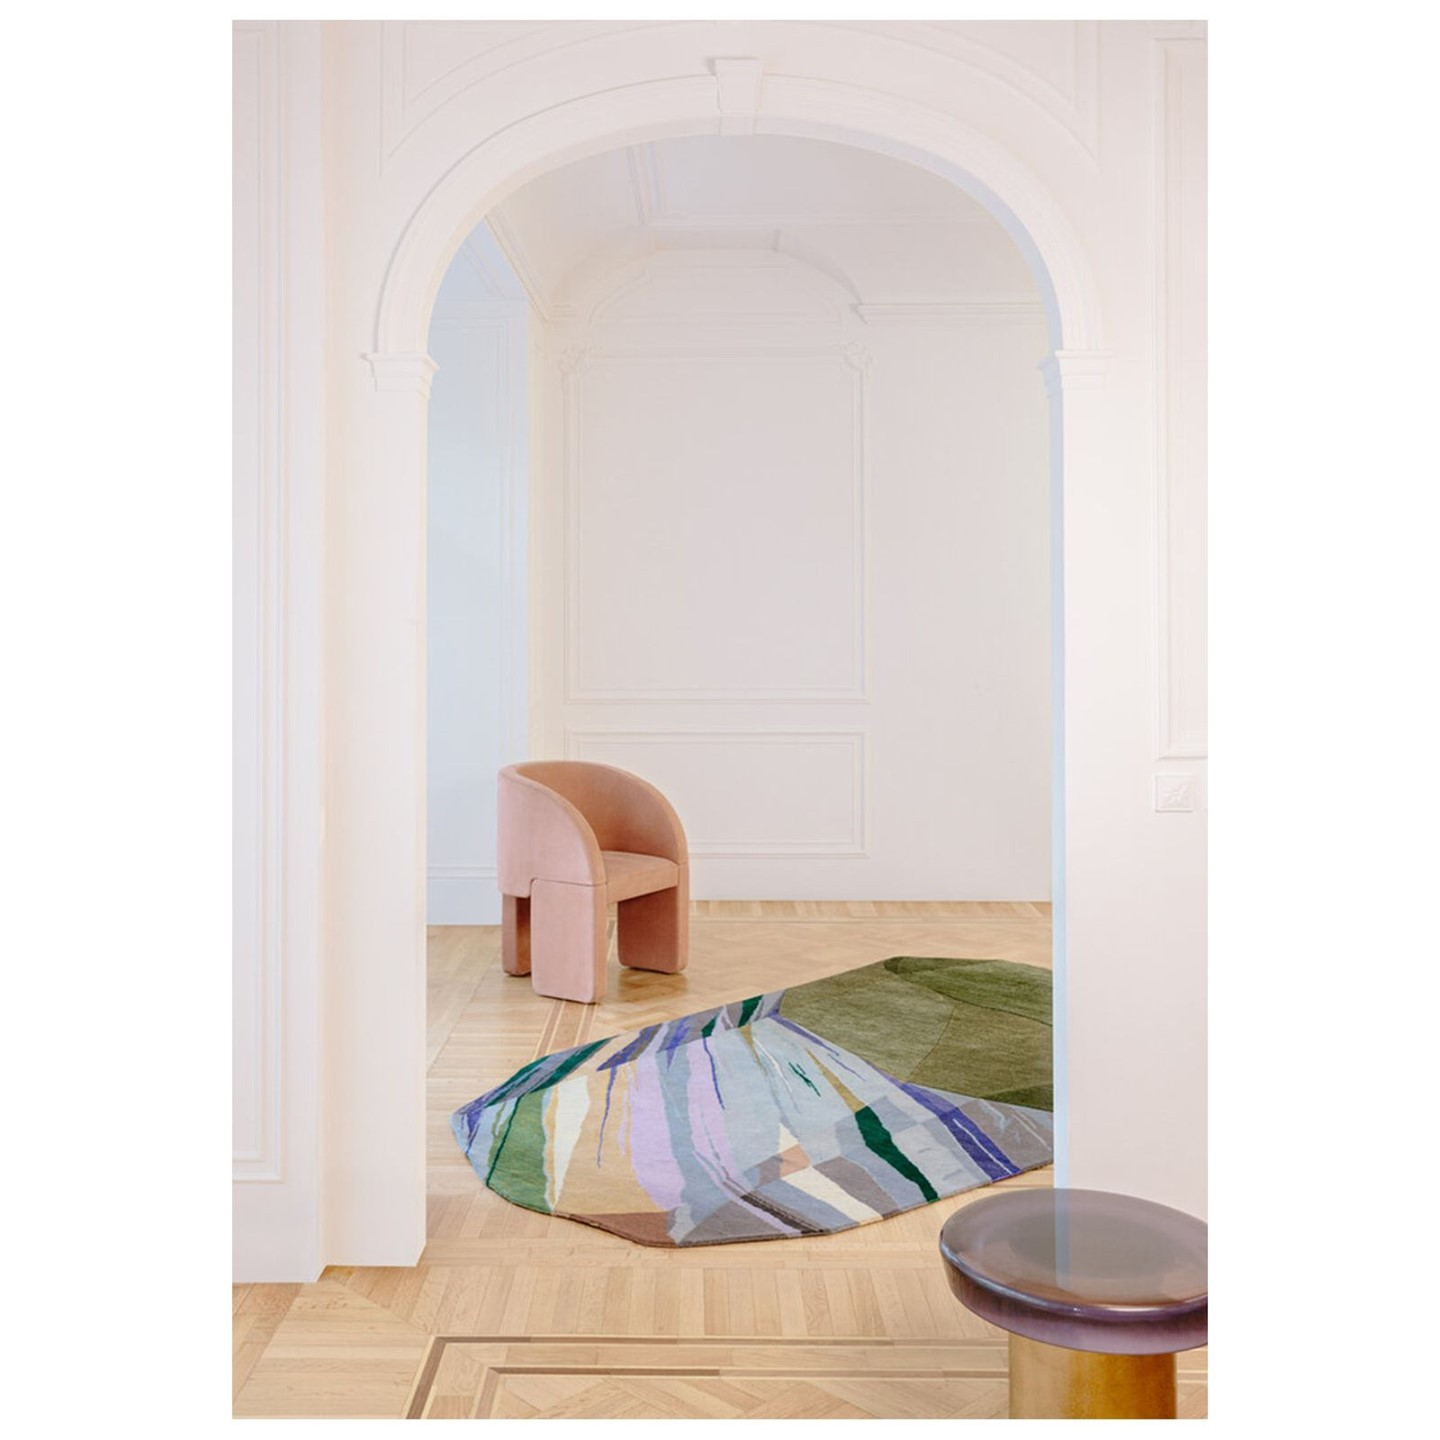 Patricia Urquiola's gem-like Fordite rug for CC Tapis is a s